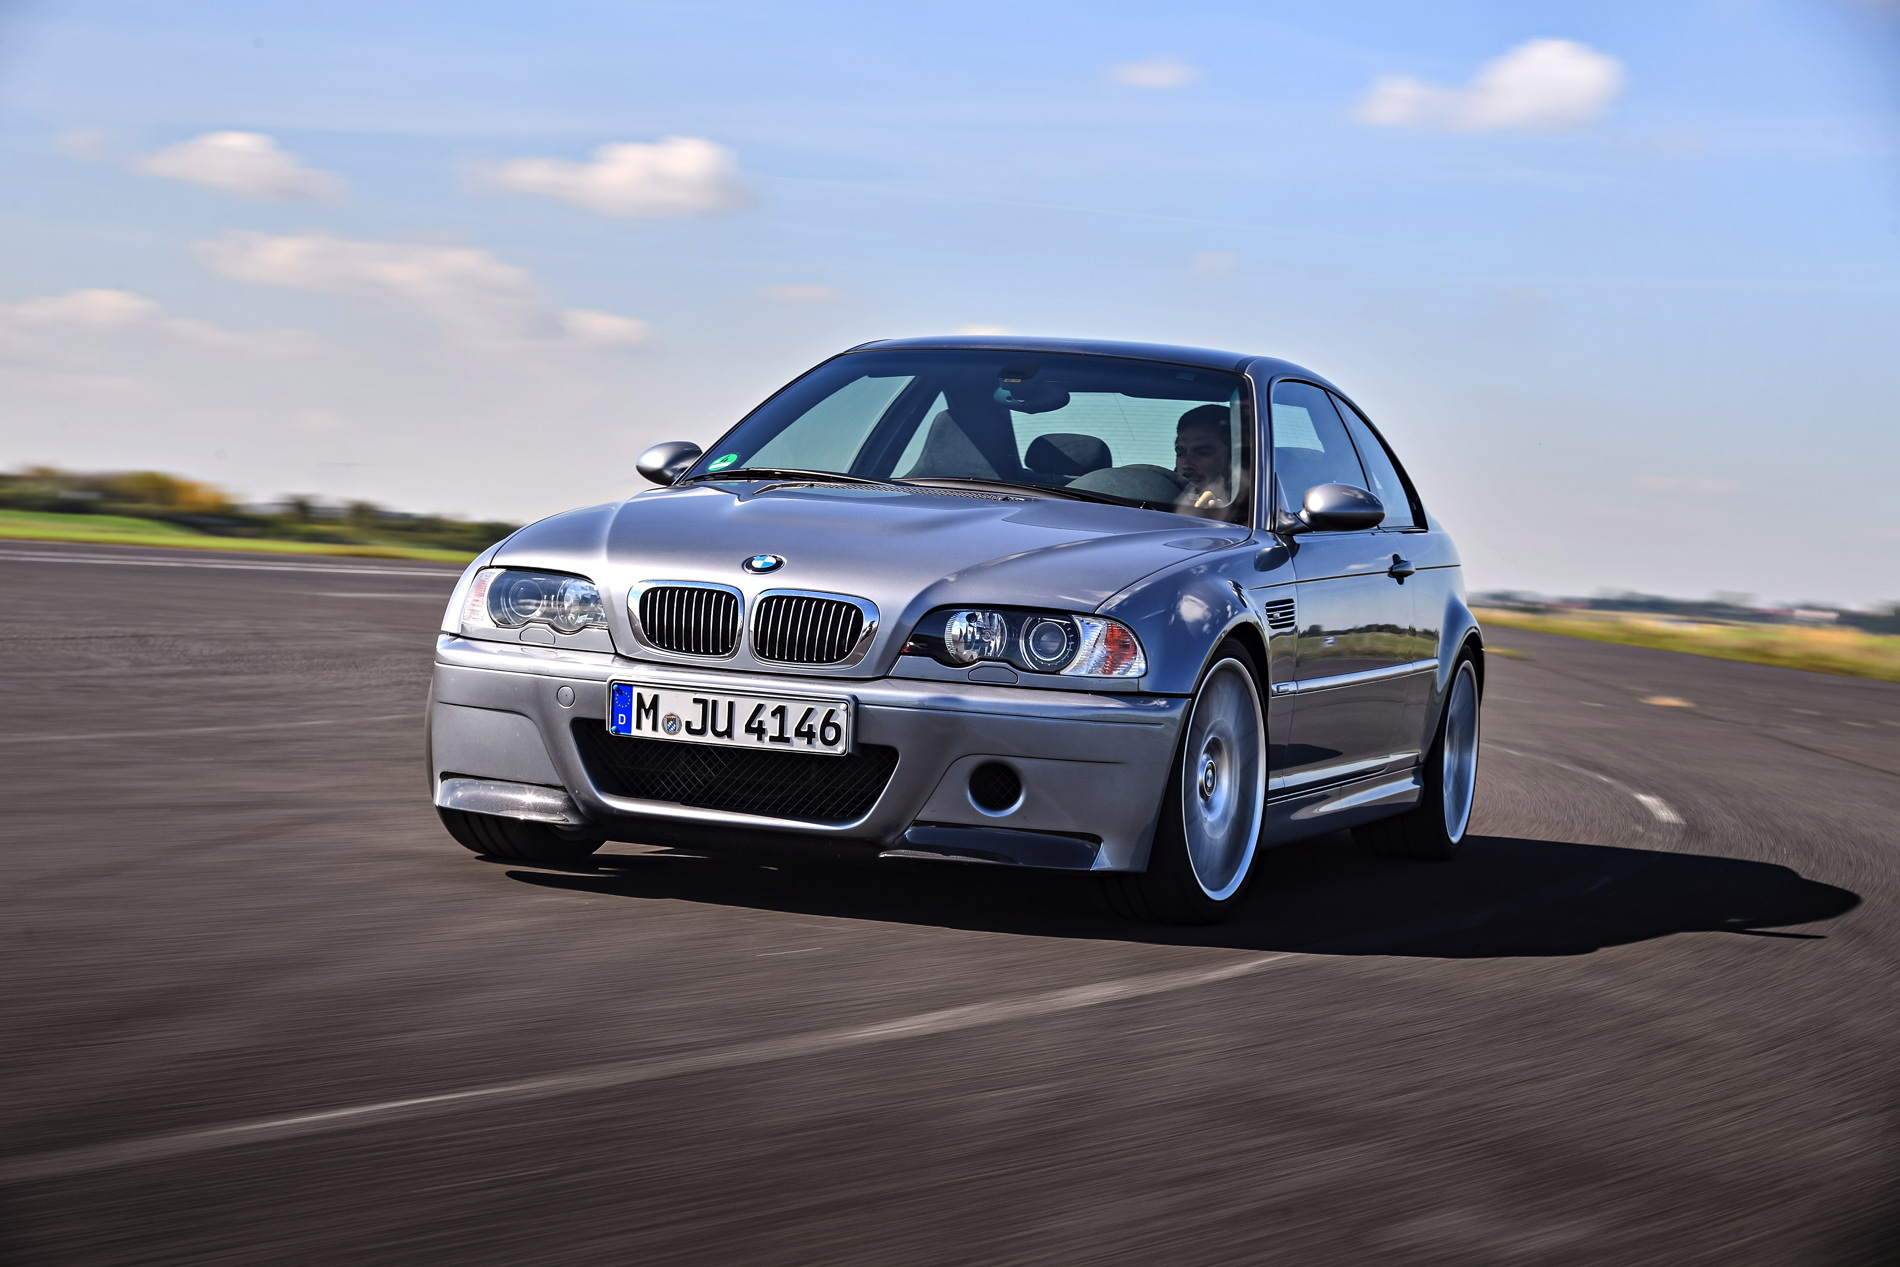 Car And Driver 10 Best >> The One And Only: BMW E46 M3 CSL